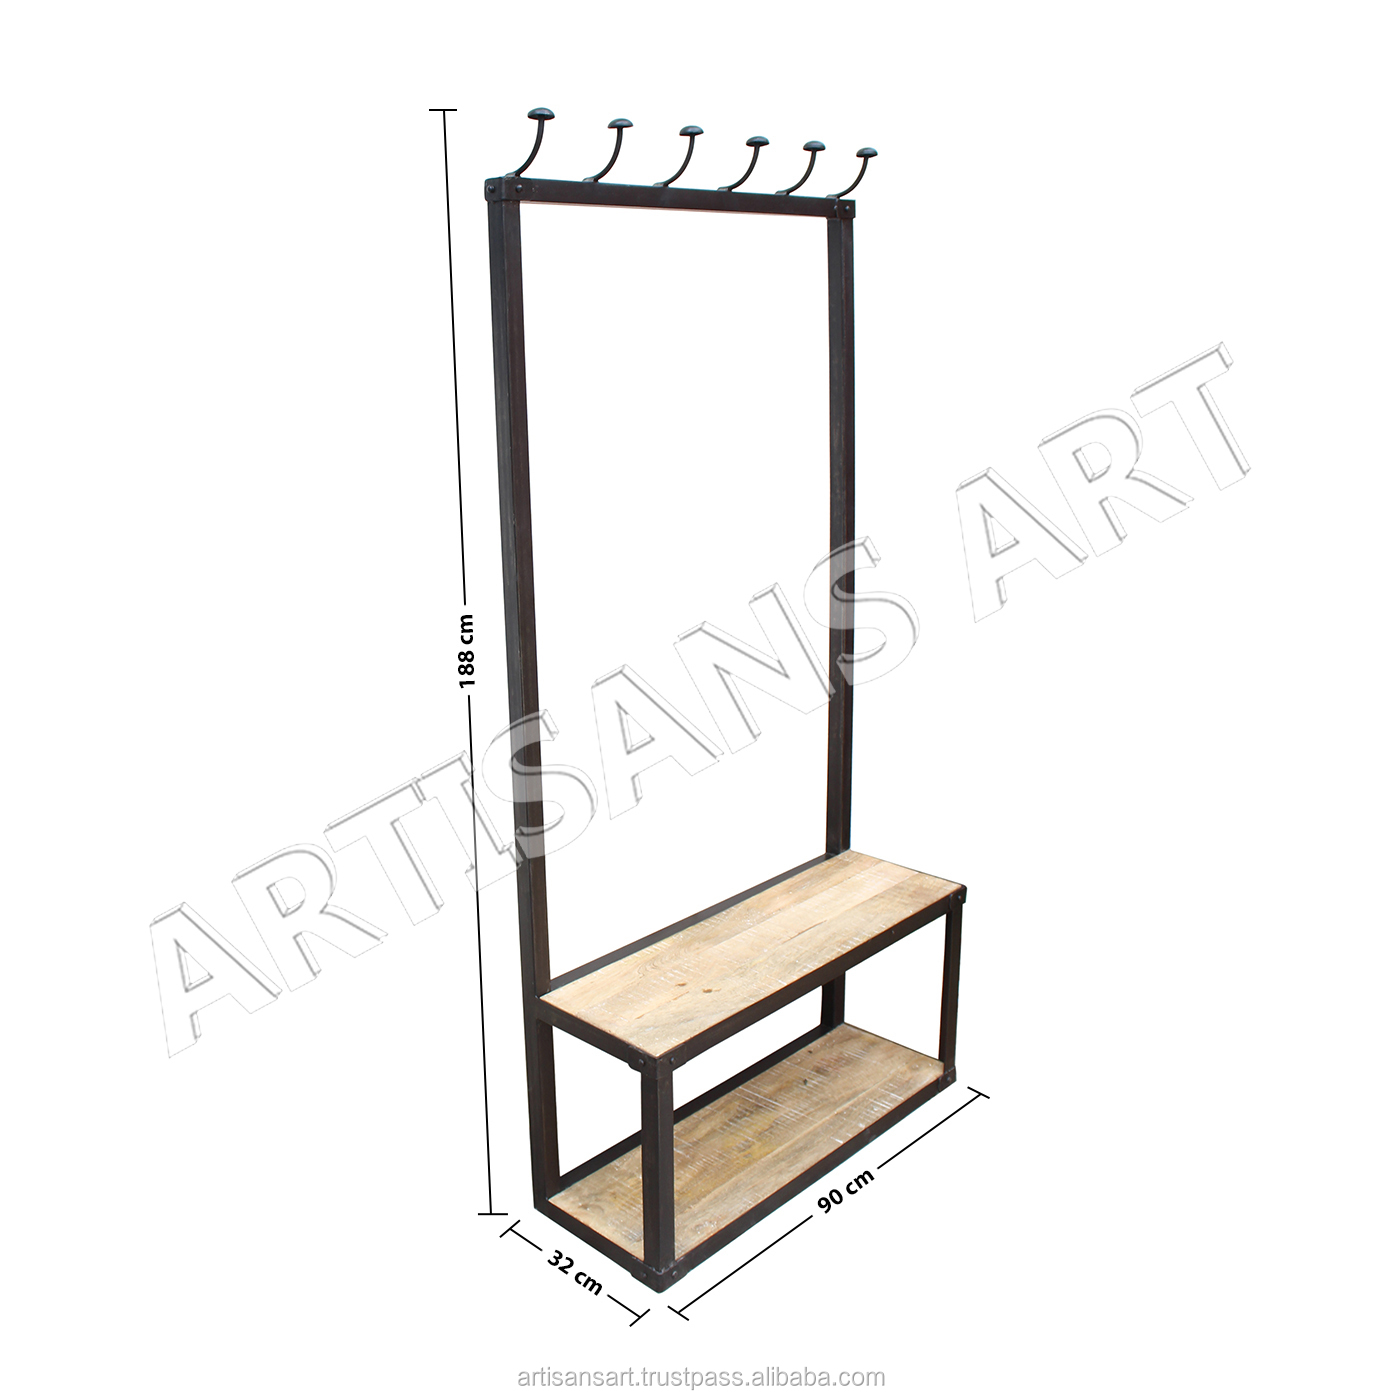 Modern Industrial Metal Wood Cloth Hanger, Rustic White washed wood iron coat hanger, Hangers & Racks Supplier